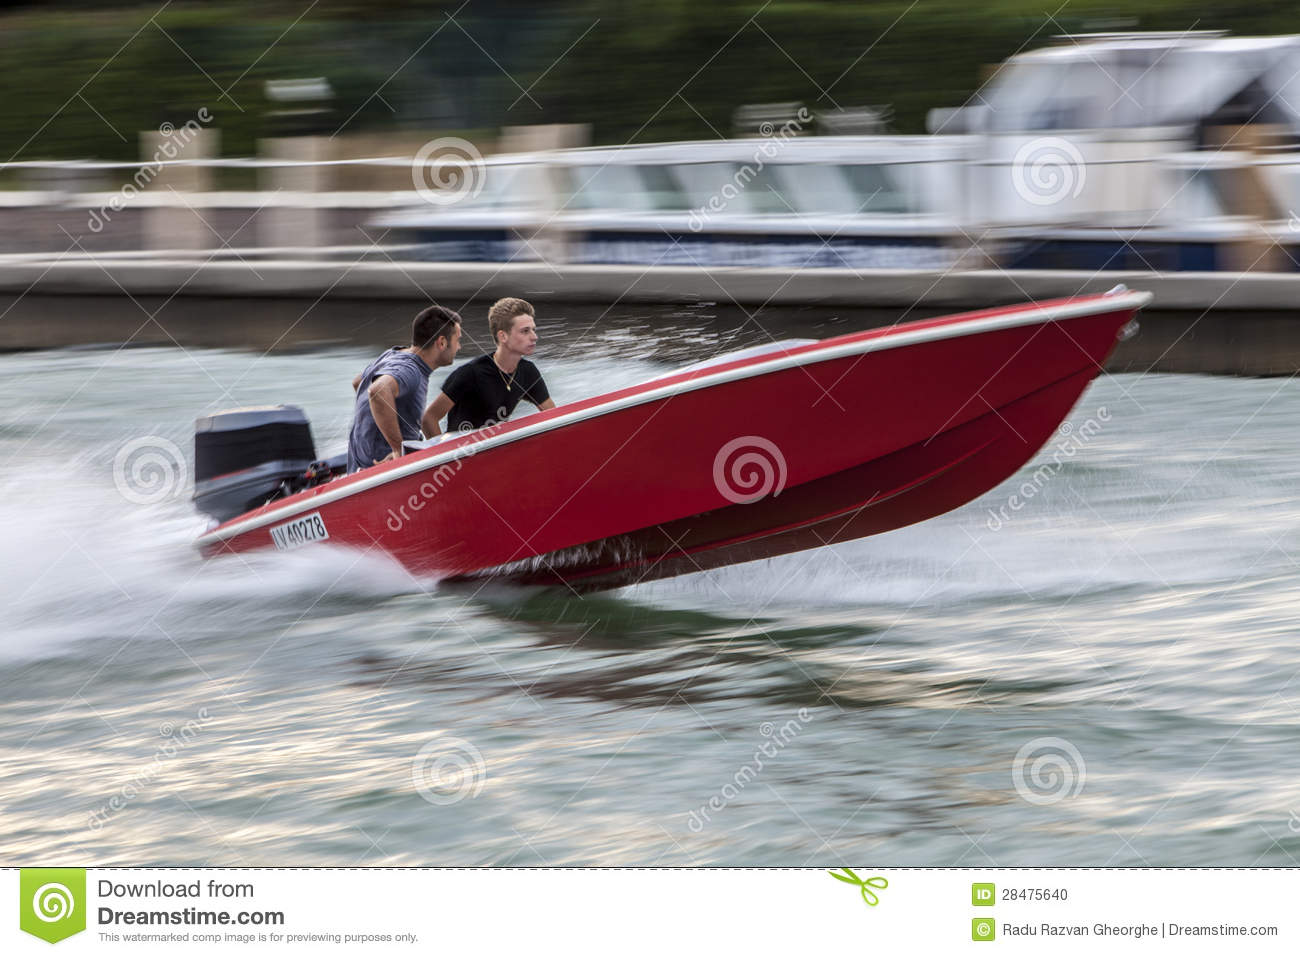 venice italy speed boats - photo#7